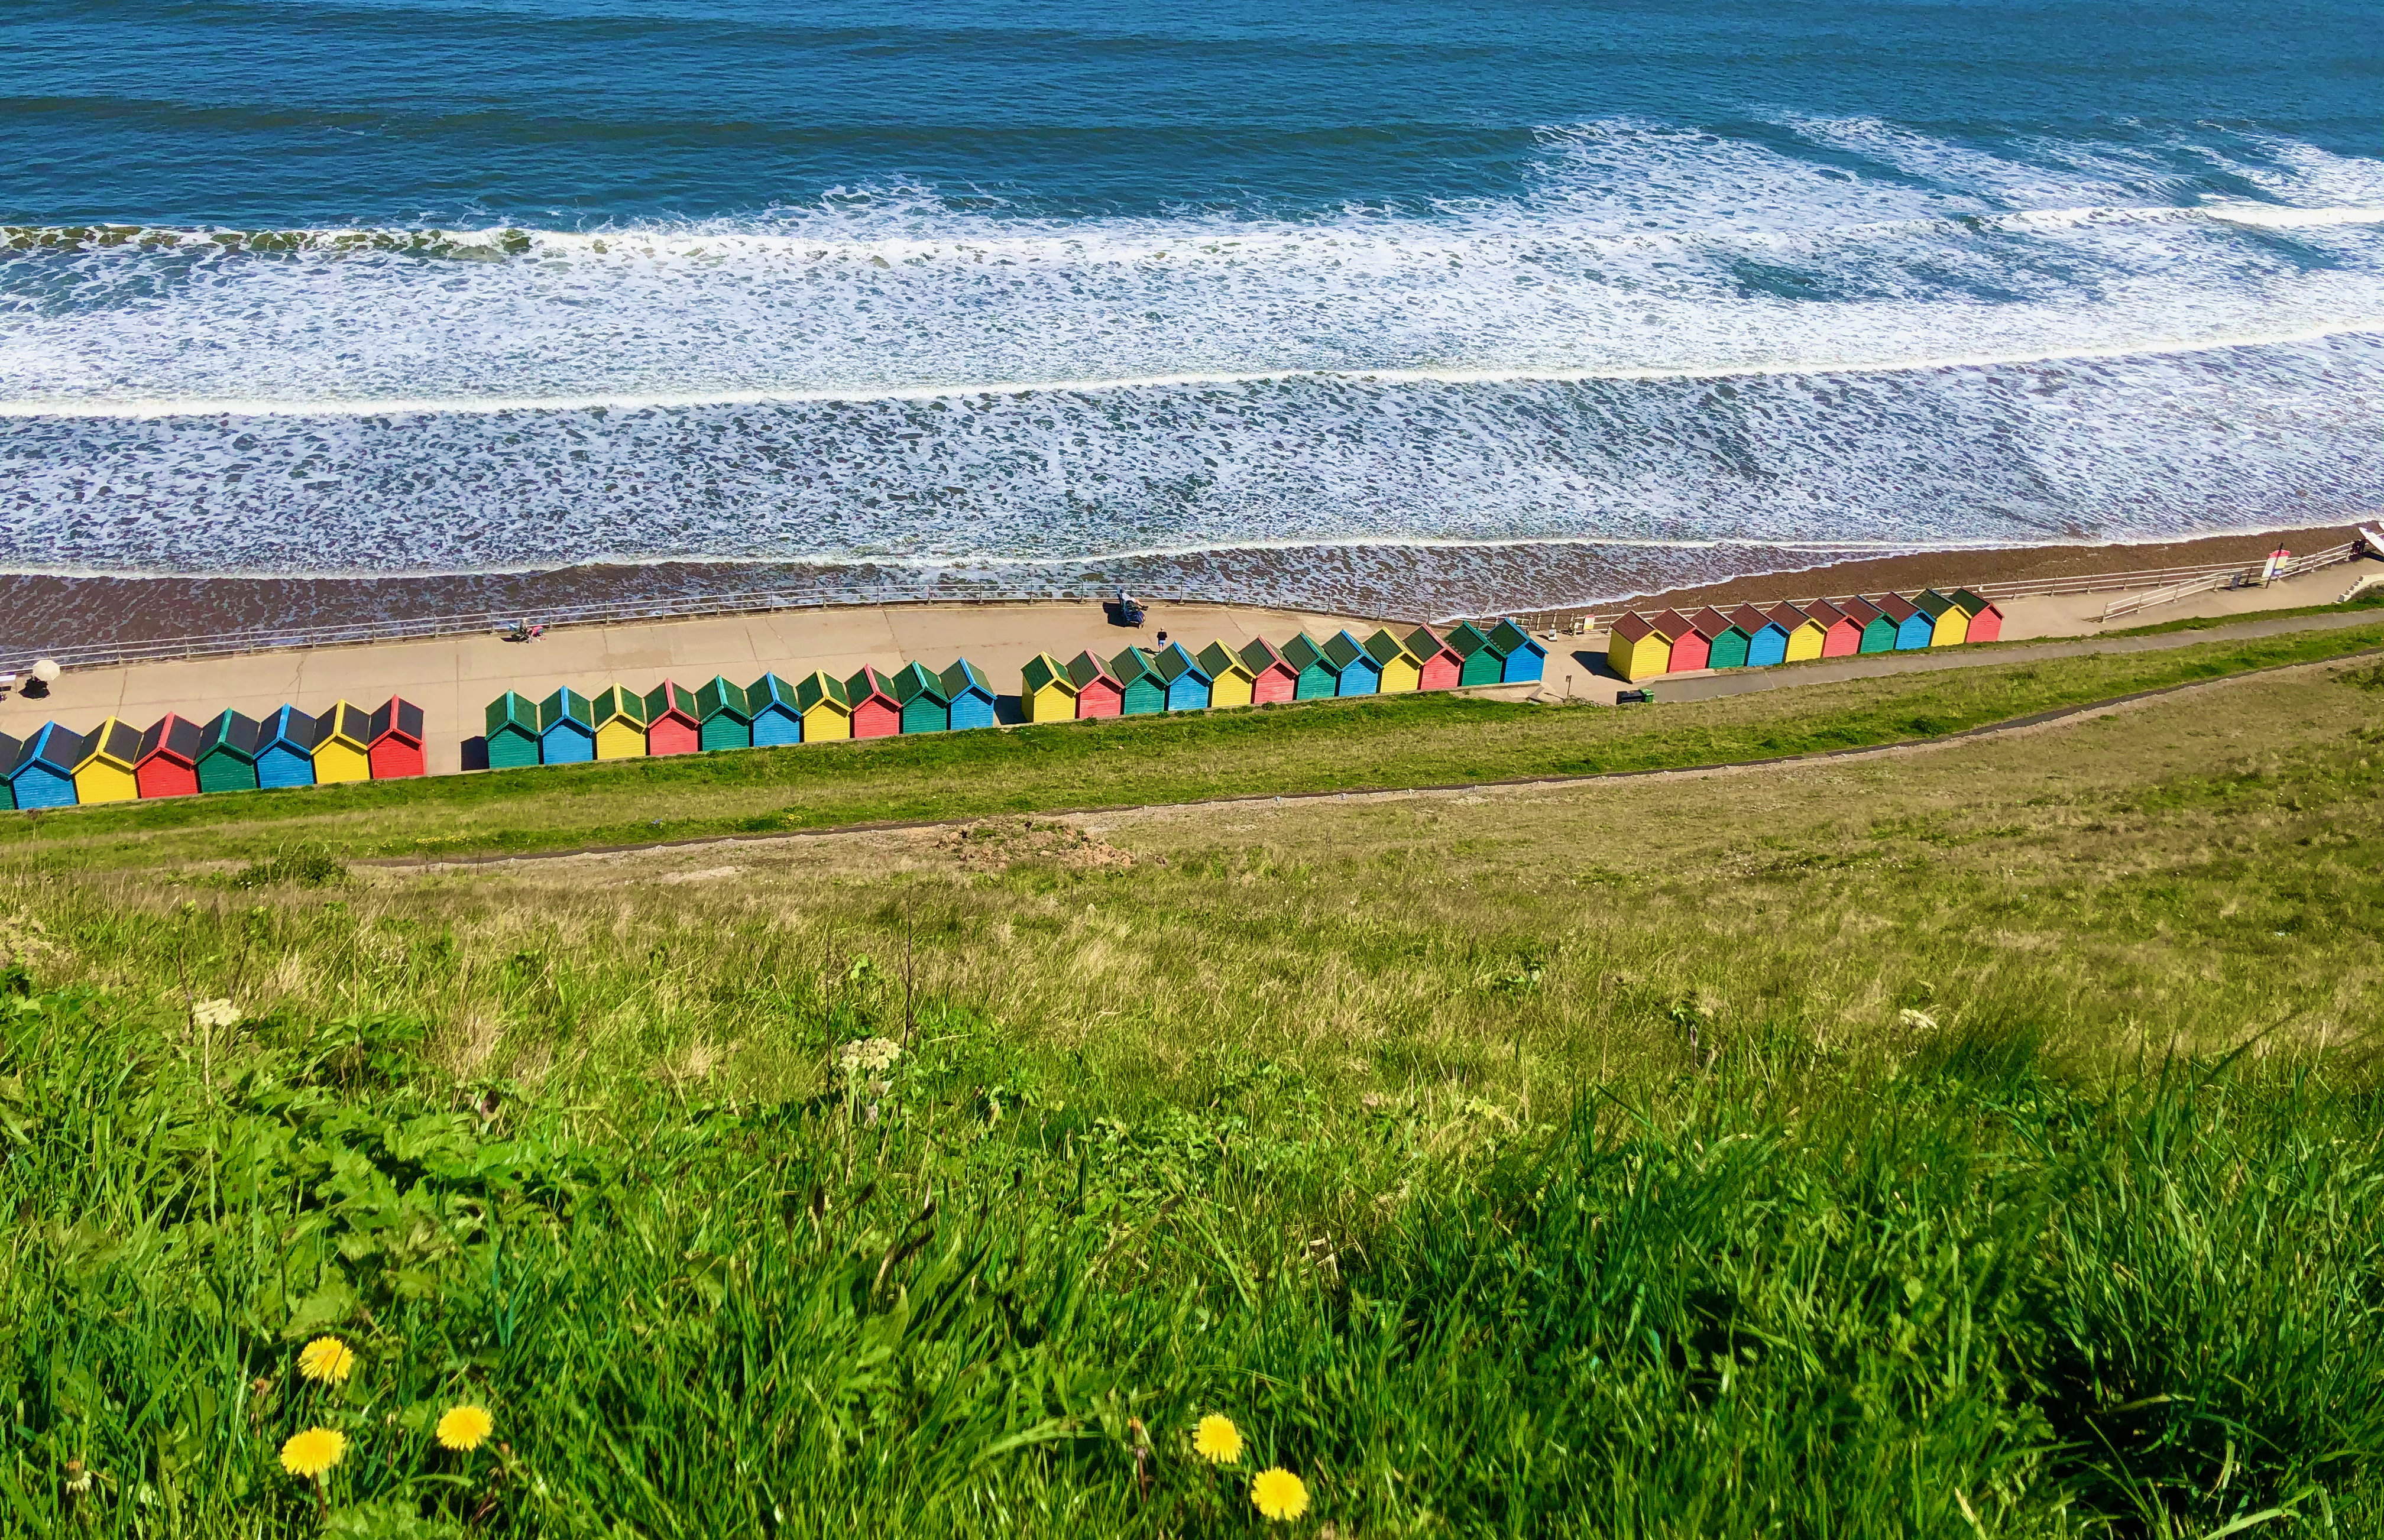 A day trip to the seaside town of Whitby in Yorkshire